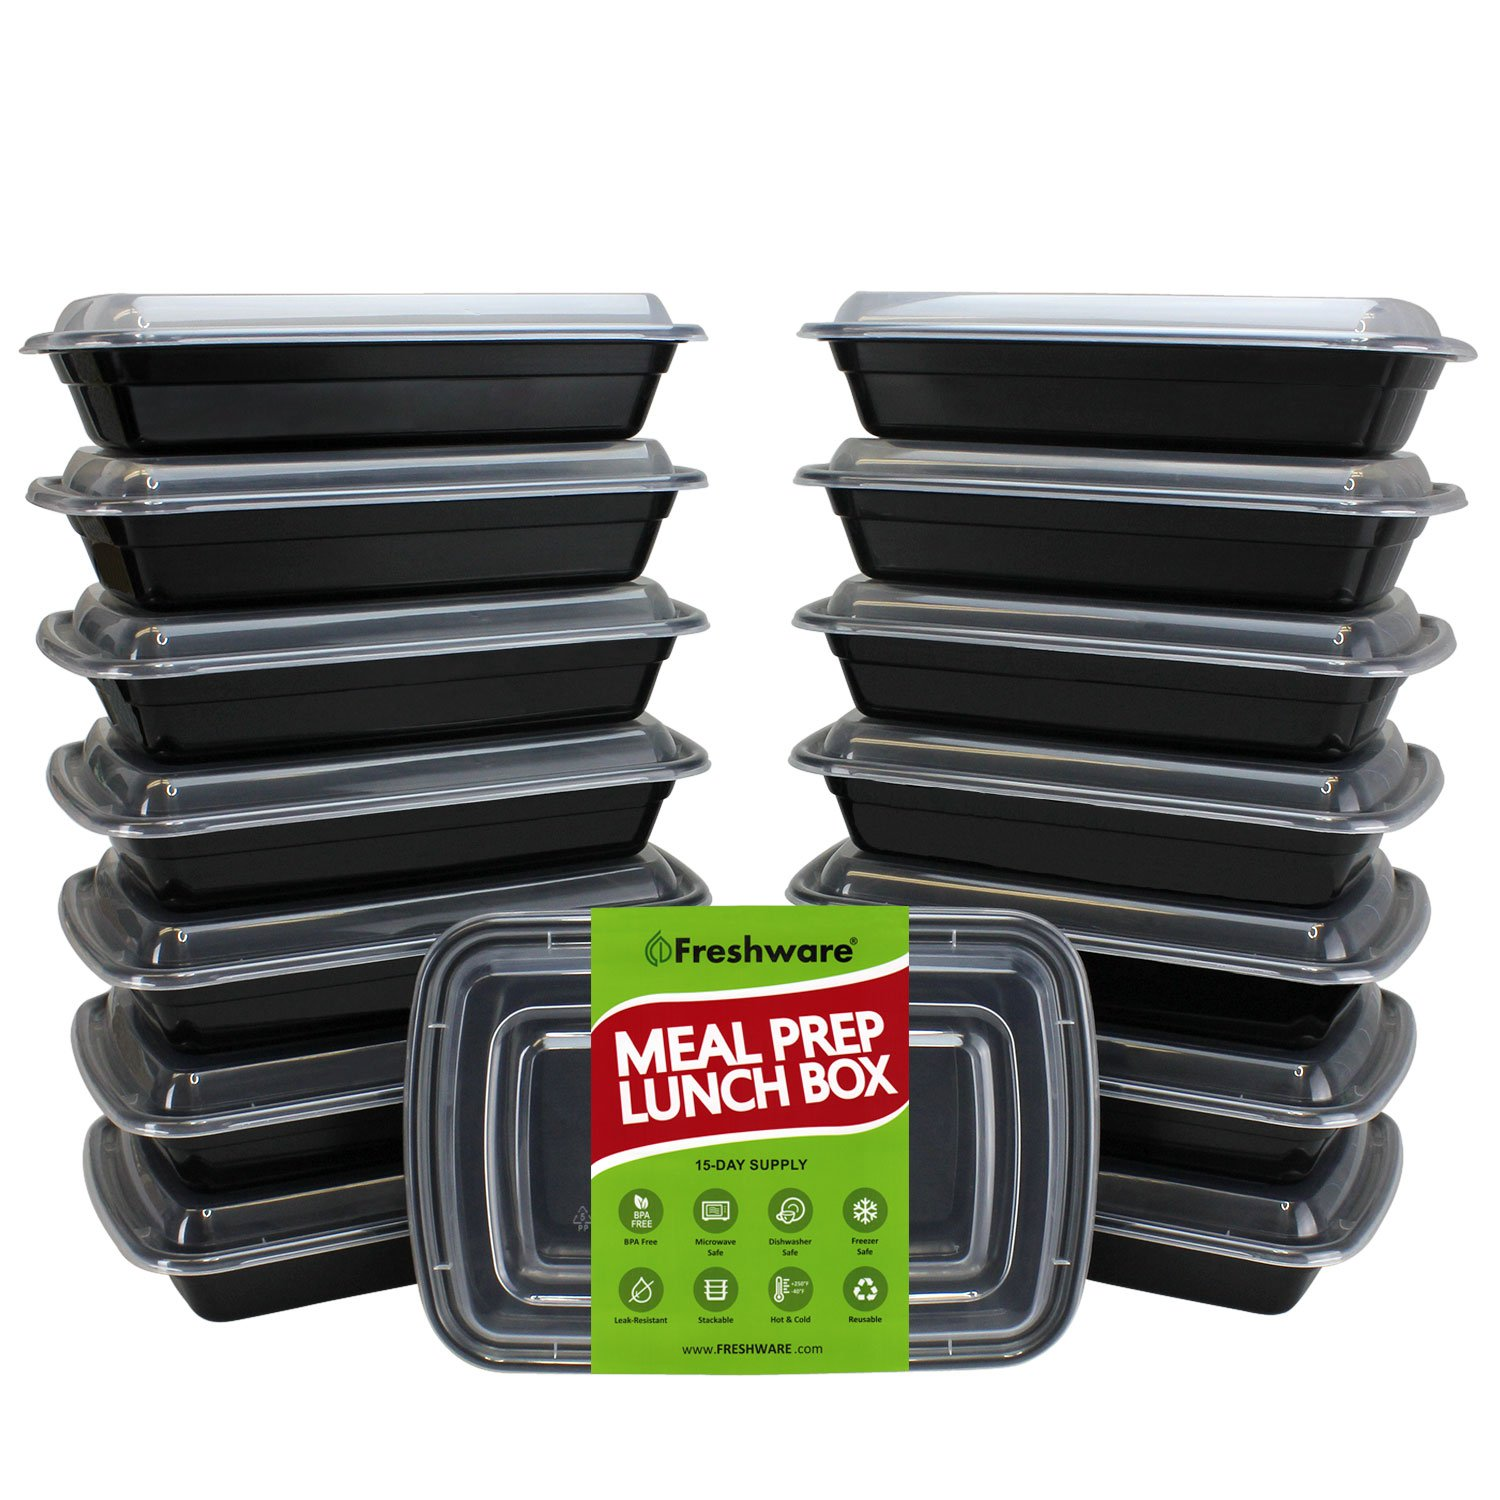 Freshware Meal Prep Containers [15 Pack] 1 Compartment with Lids, Food Containers, Lunch Box | BPA Free | Stackable | Bento Box, Microwave/Dishwasher/Freezer Safe, Portion Control, 21 day fix (28 oz) YH-1X15